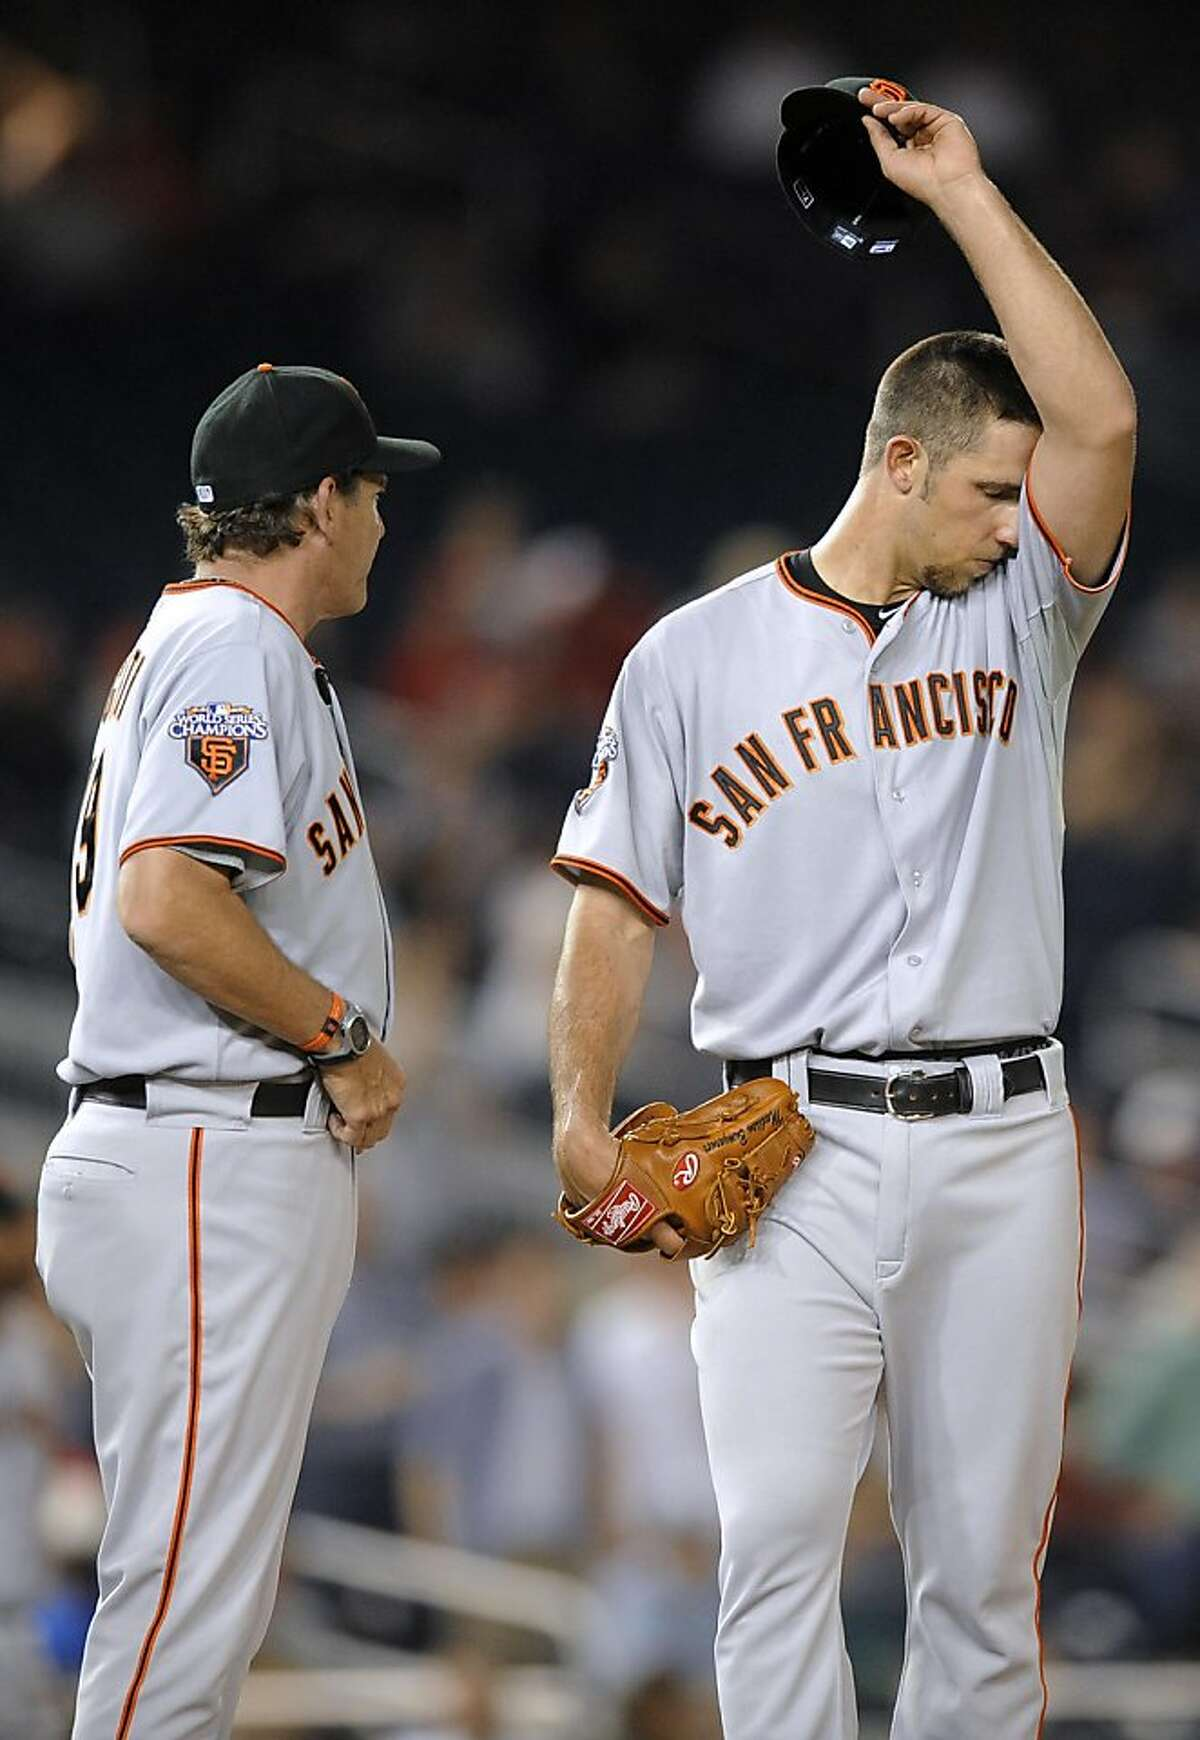 San Francisco Giants pitching coach Dave Righetti, left, visits starting pitcher Madison Bumgarner during the seventh inning of a baseball game against the Washington Nationals on Monday, May 2, 2011, in Washington. The Nationals won 2-0.